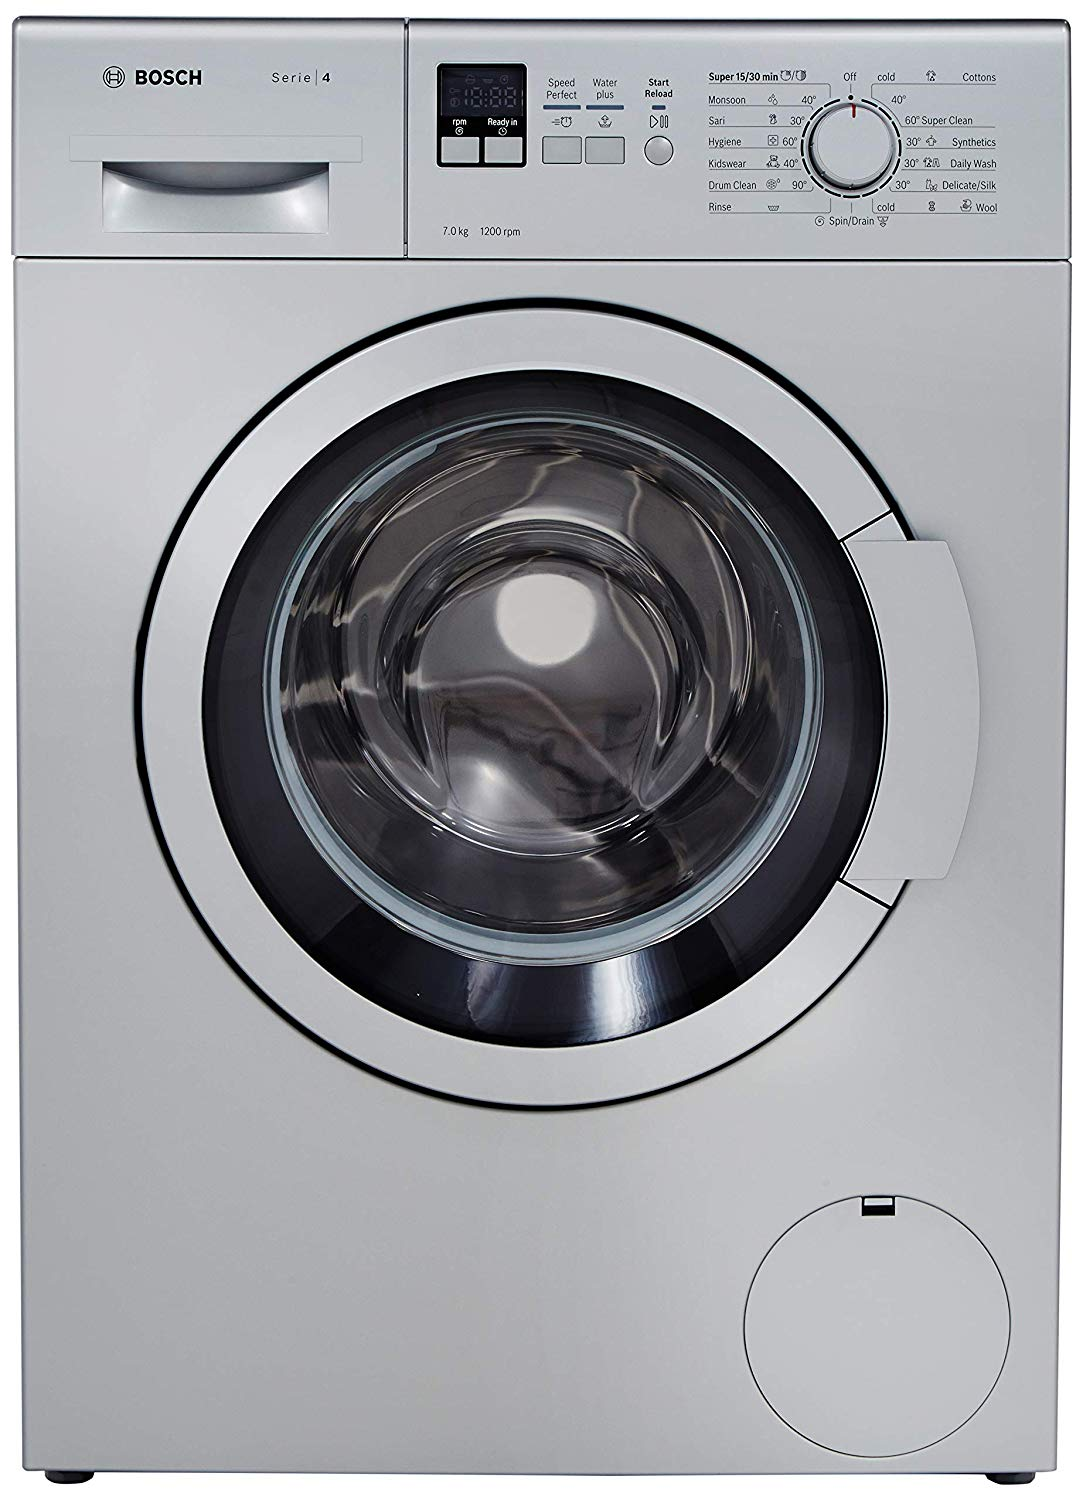 Bosch Front load washing machine compared with LG Front Loading Machines